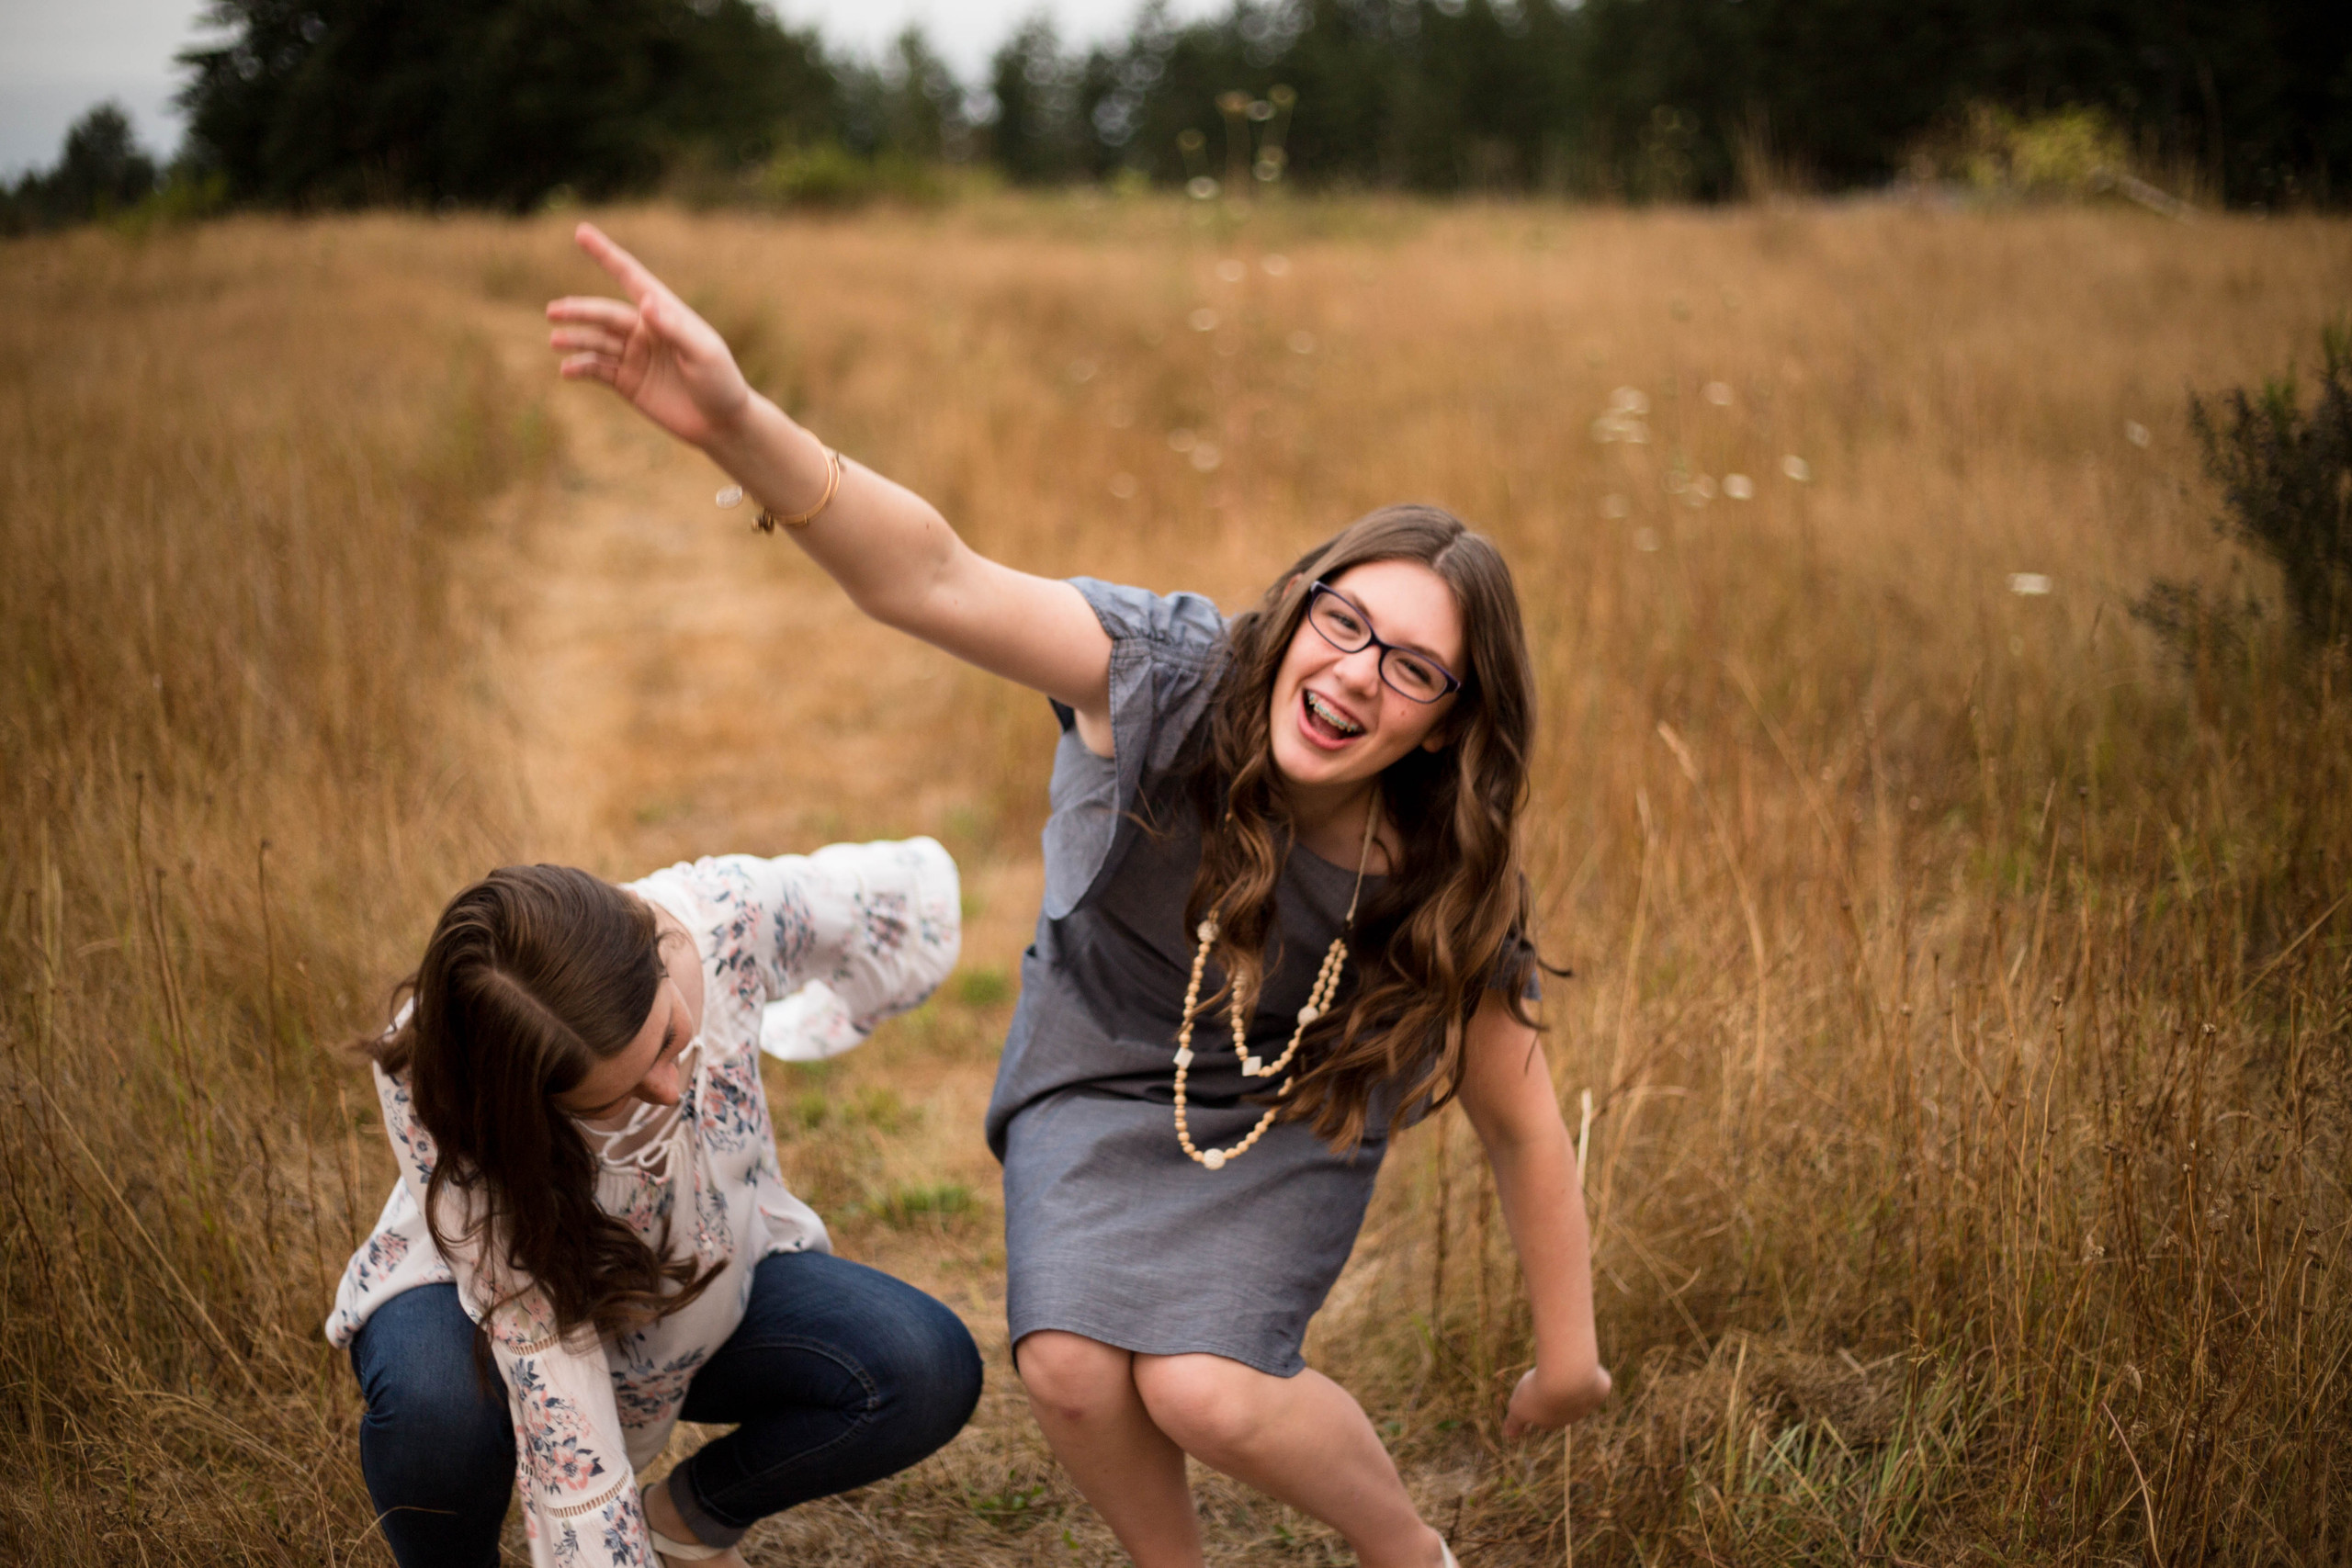 Family photographer in Yelm, Wa. A Bit O' Whimsy Photography